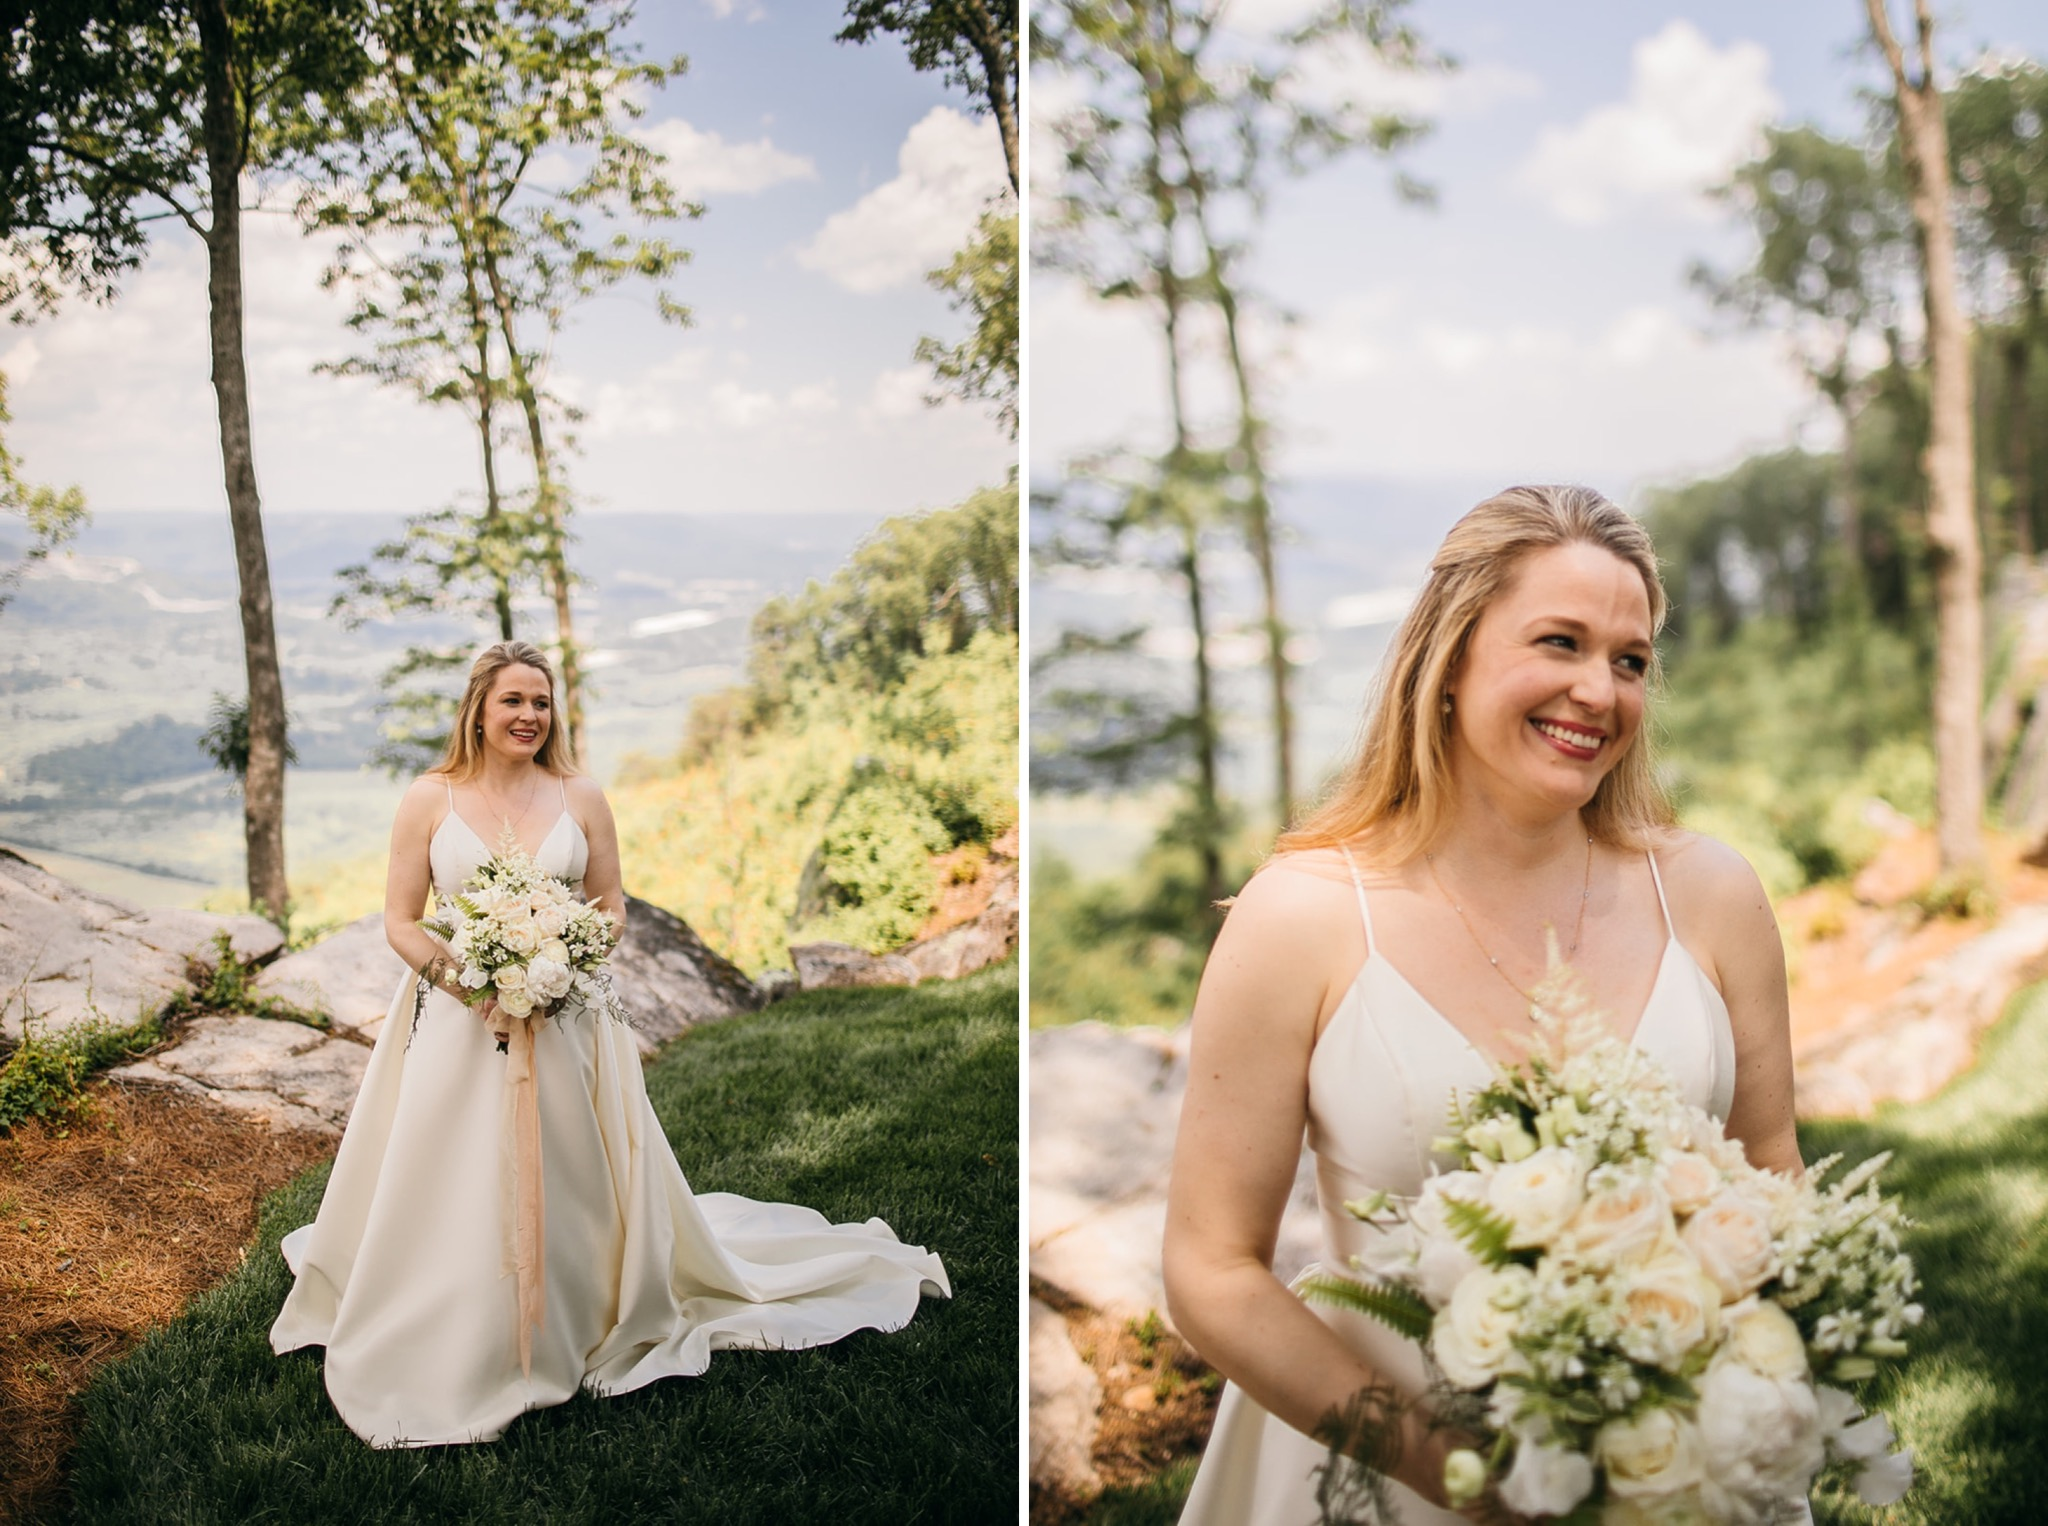 bride holds bouquet of white and light peach flowers at the edge of a cliffside overlooking the Tennessee Valley